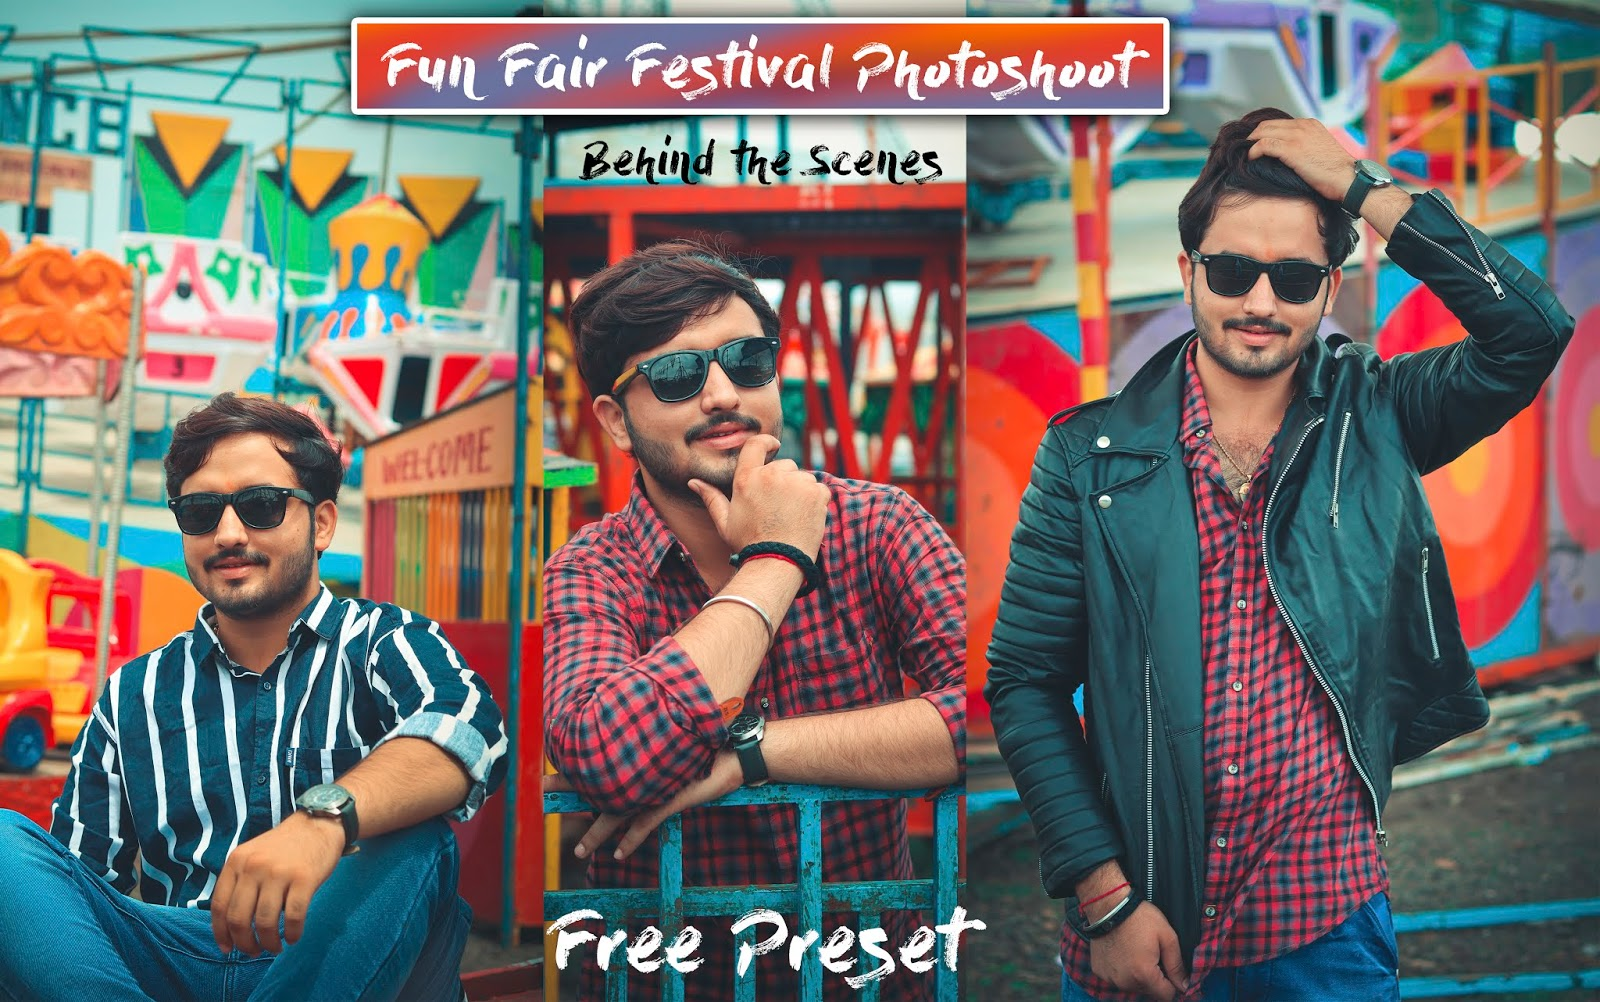 Top 10 Poses for Boys in FunFair Festival | Carousel Ride Photography | Download Preset used in this photo